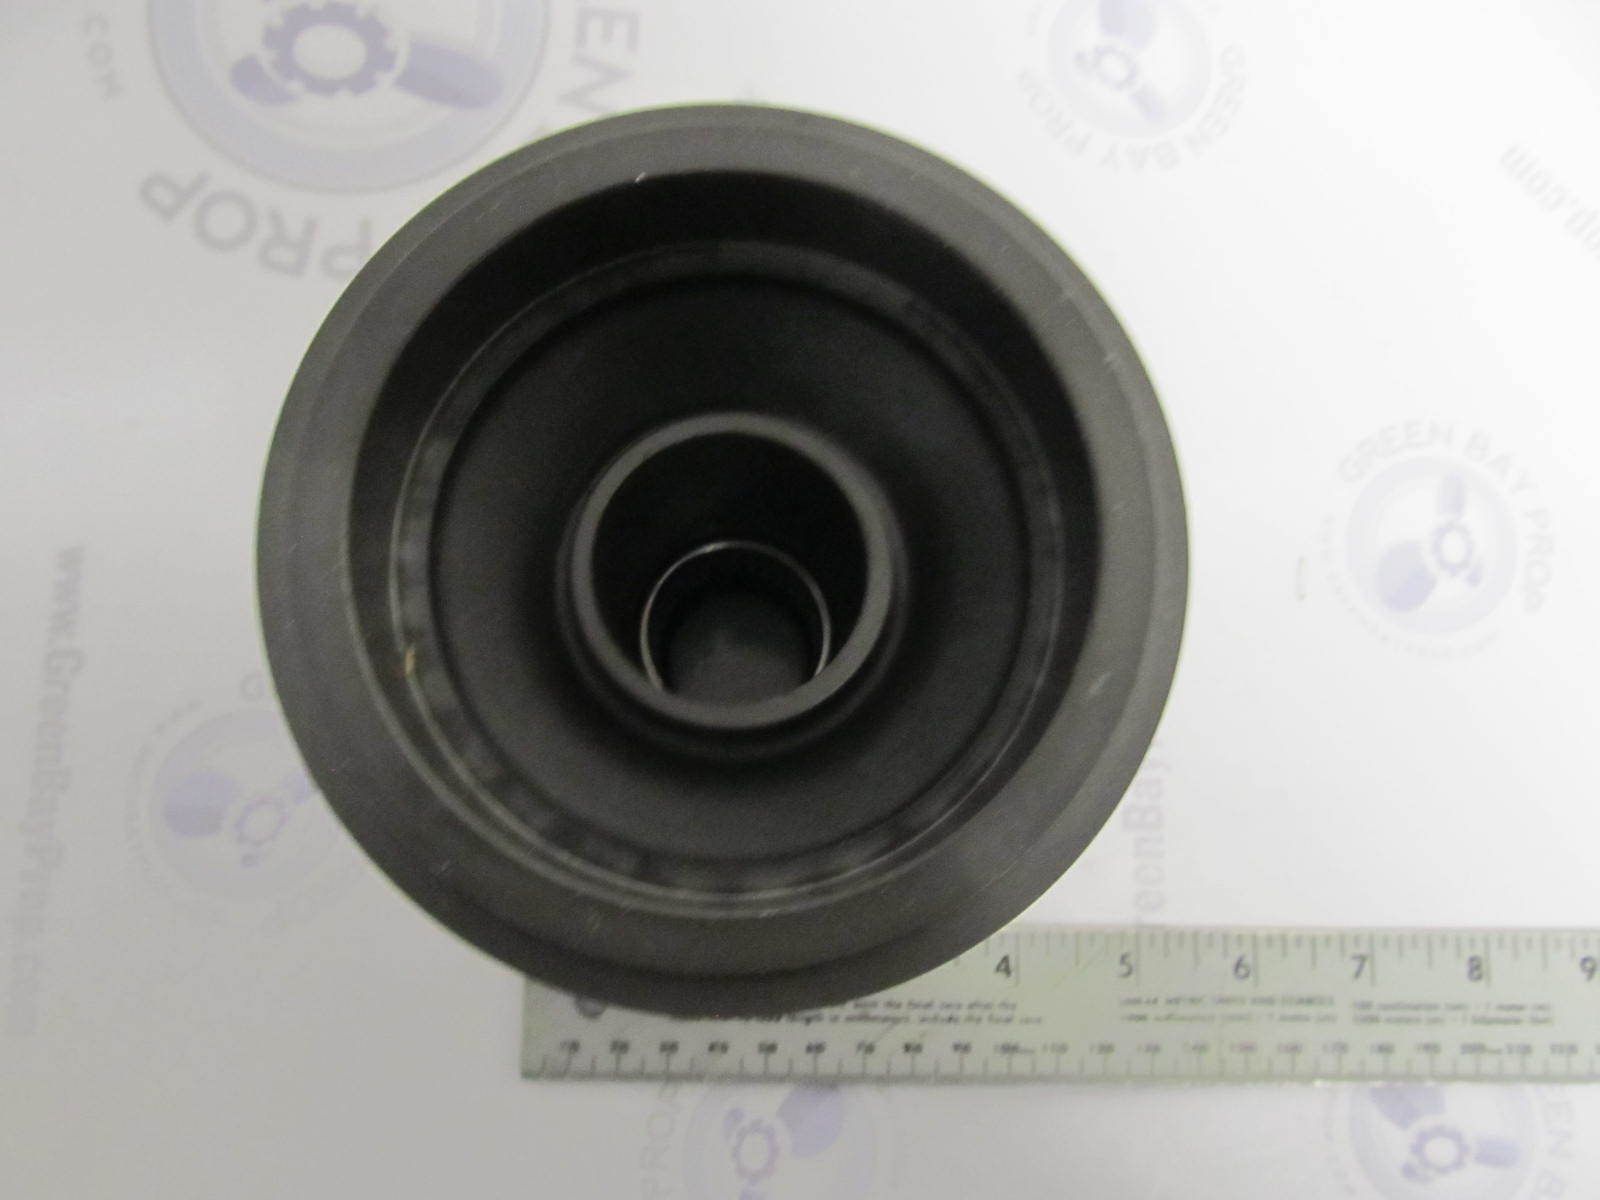 96184a1 43567a1 gear housing bearing carrier for mercury v for House bearing